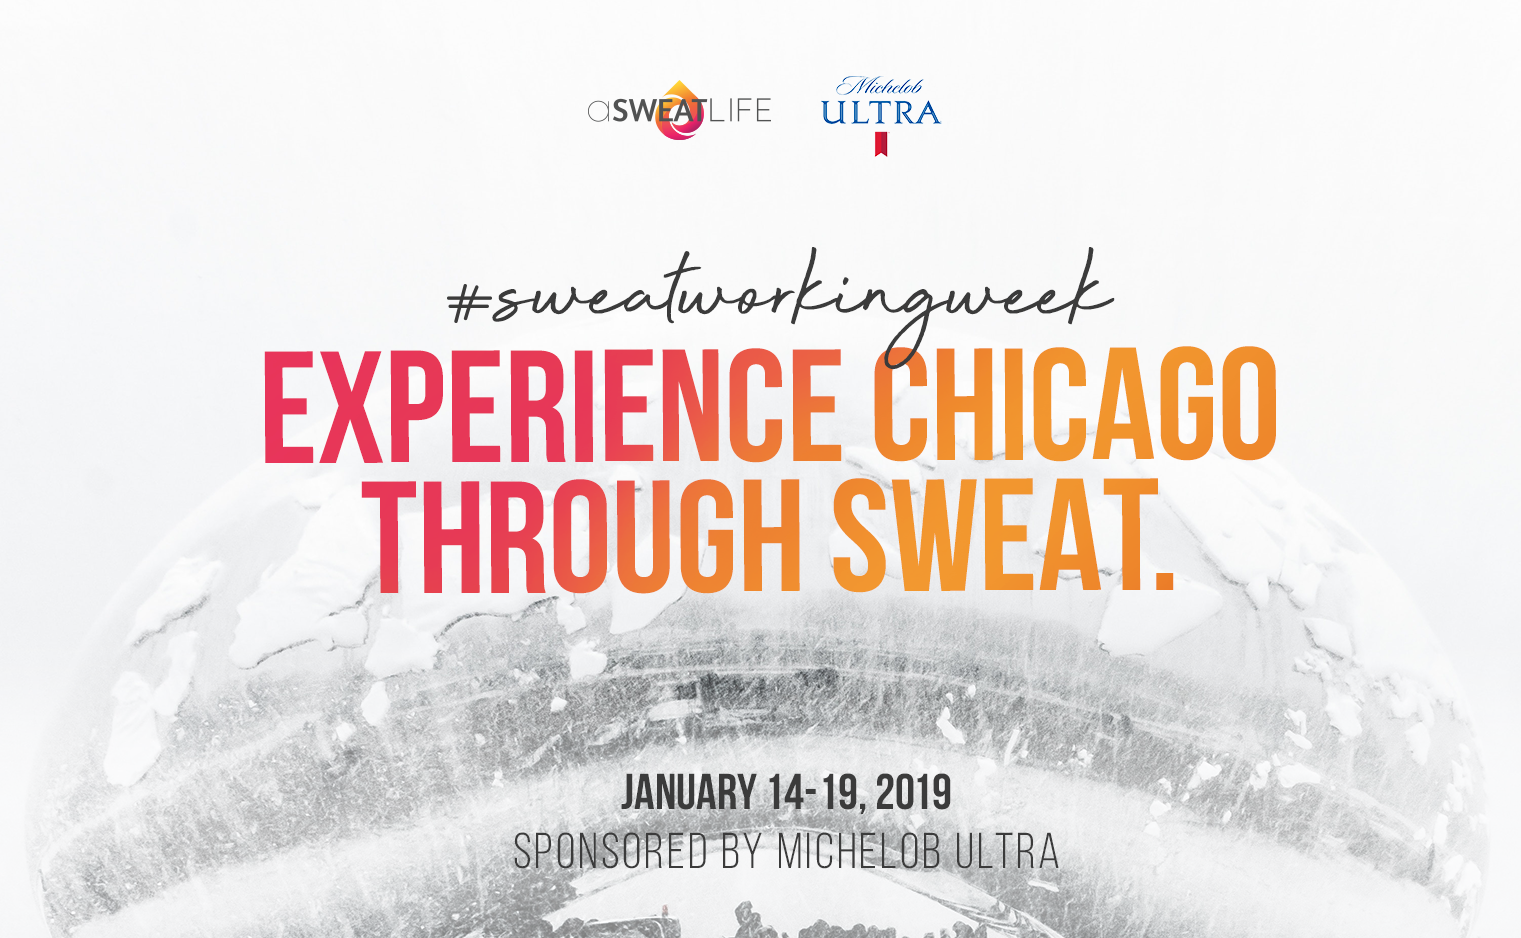 #sweatworkingweek january 2019